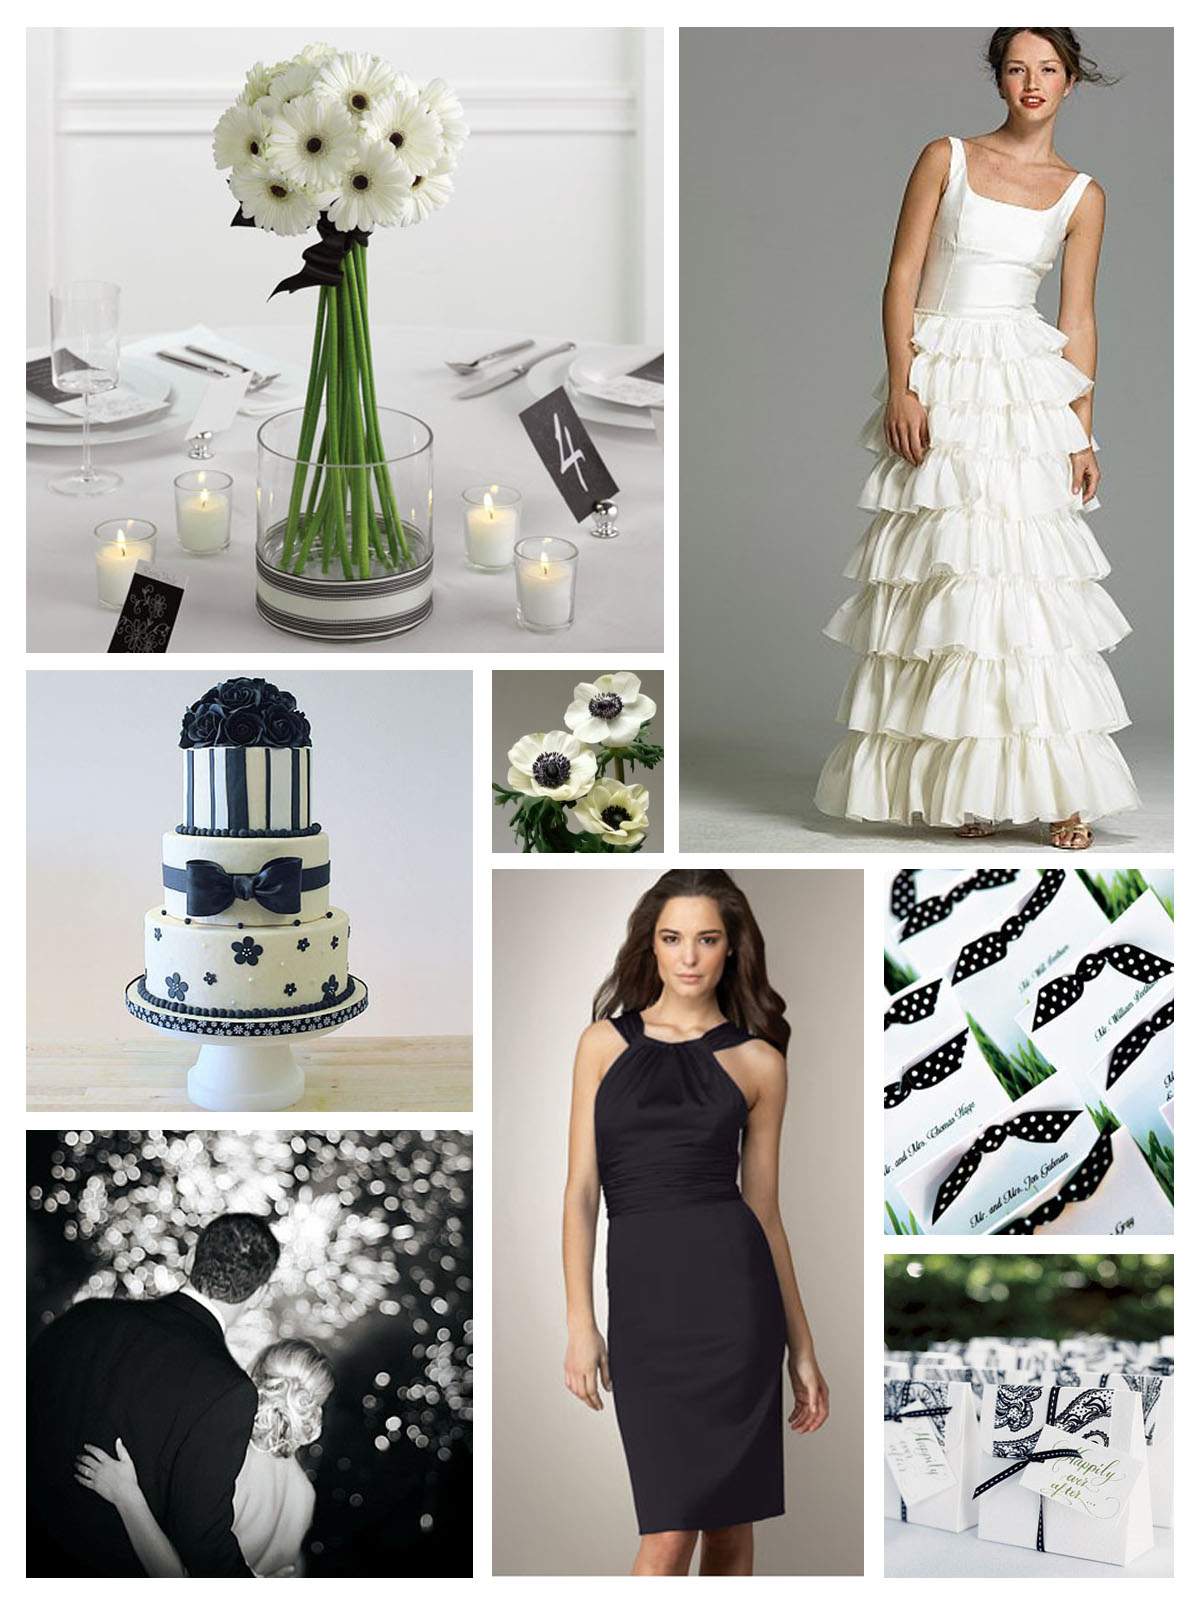 Your Wedding Support: GET THE LOOK - Black & White Wedding